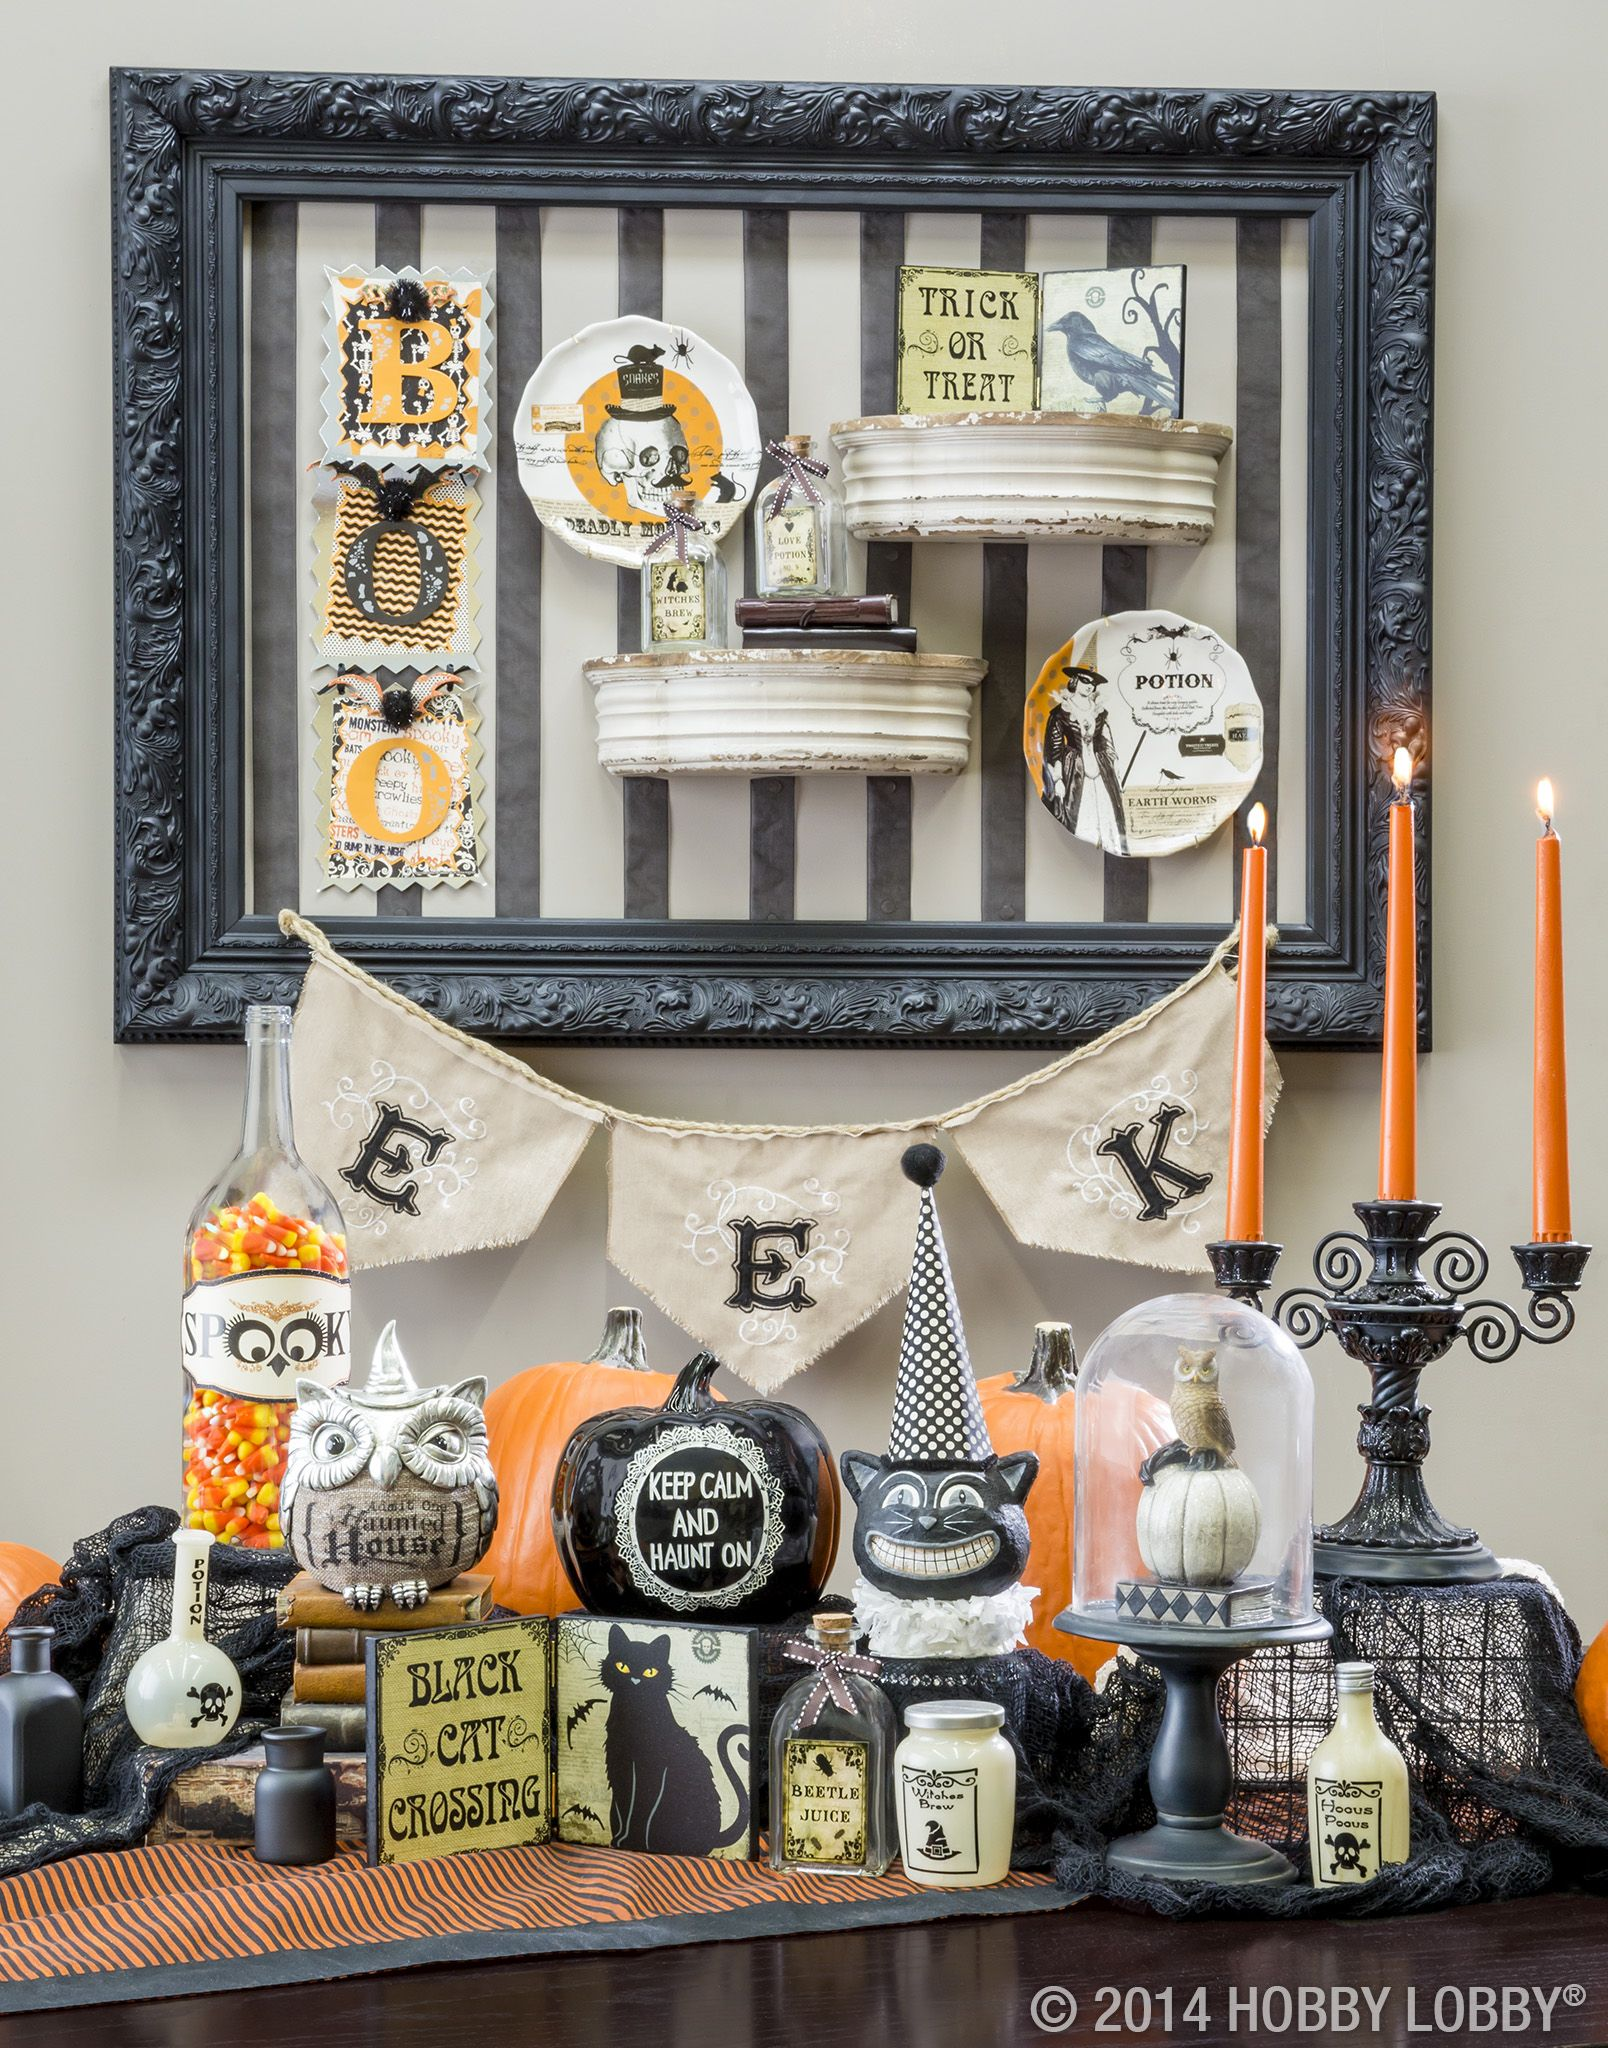 We love these grinning critters and spooky items for Halloween decor - halloween decor ideas pinterest